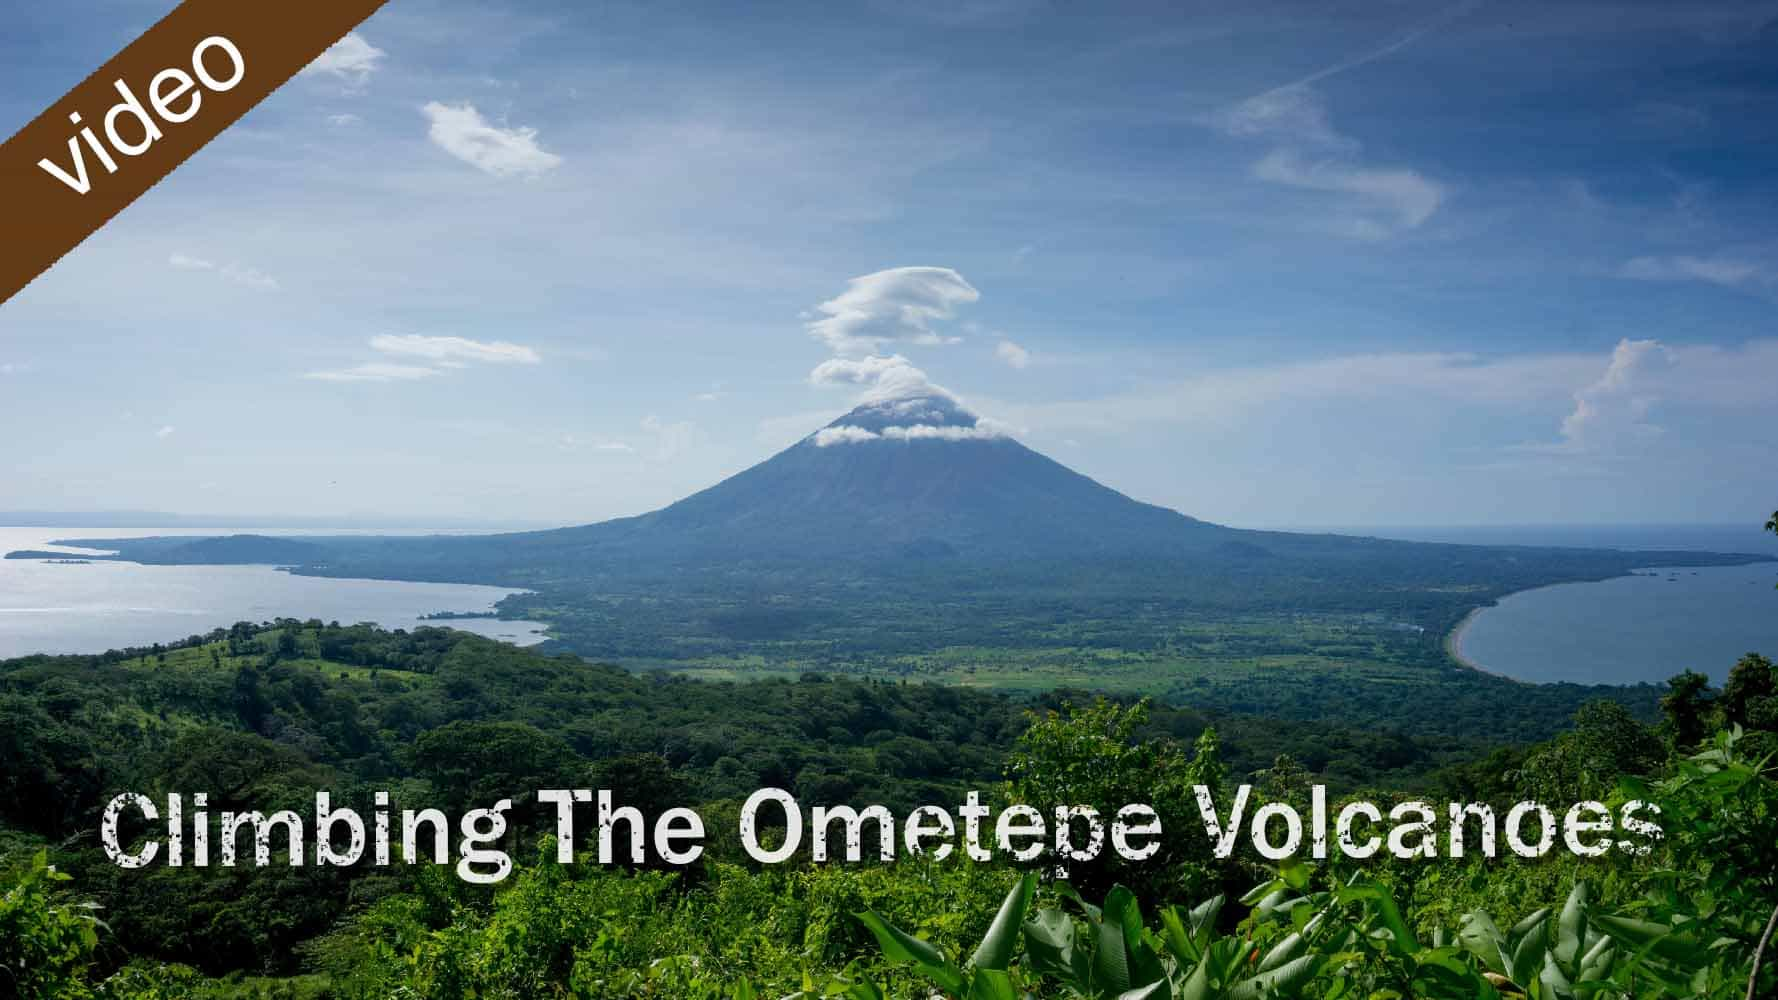 Climbing The Ometepe Volcanos Video